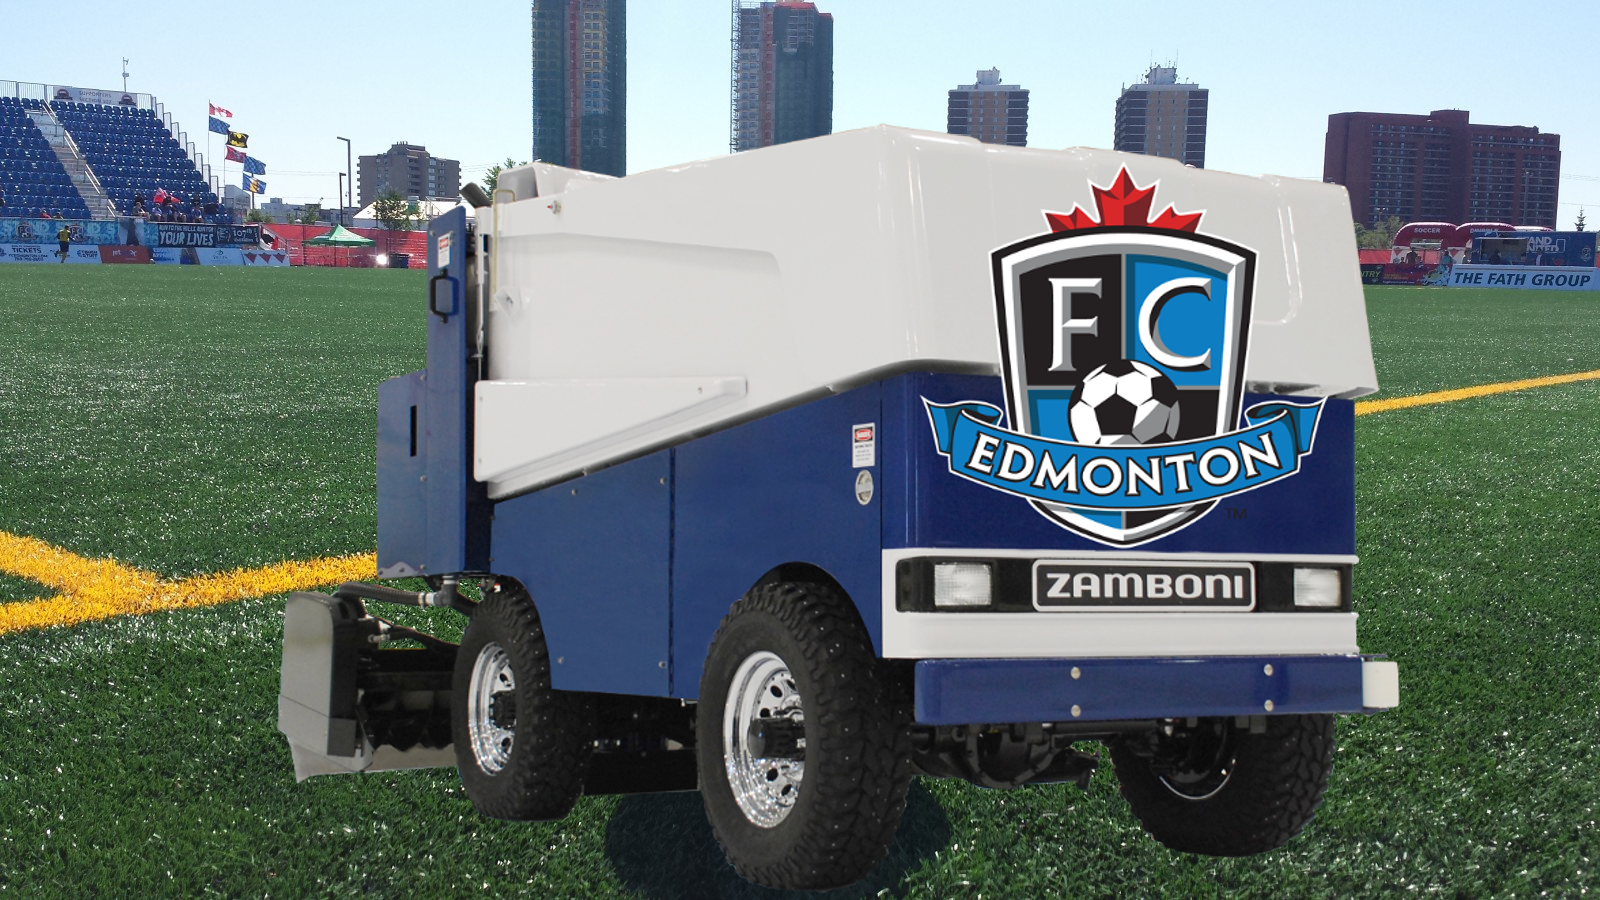 The FC Edmonton Zamboni in hover mode.... apparently.... c'mon people.... is this the best we can do?